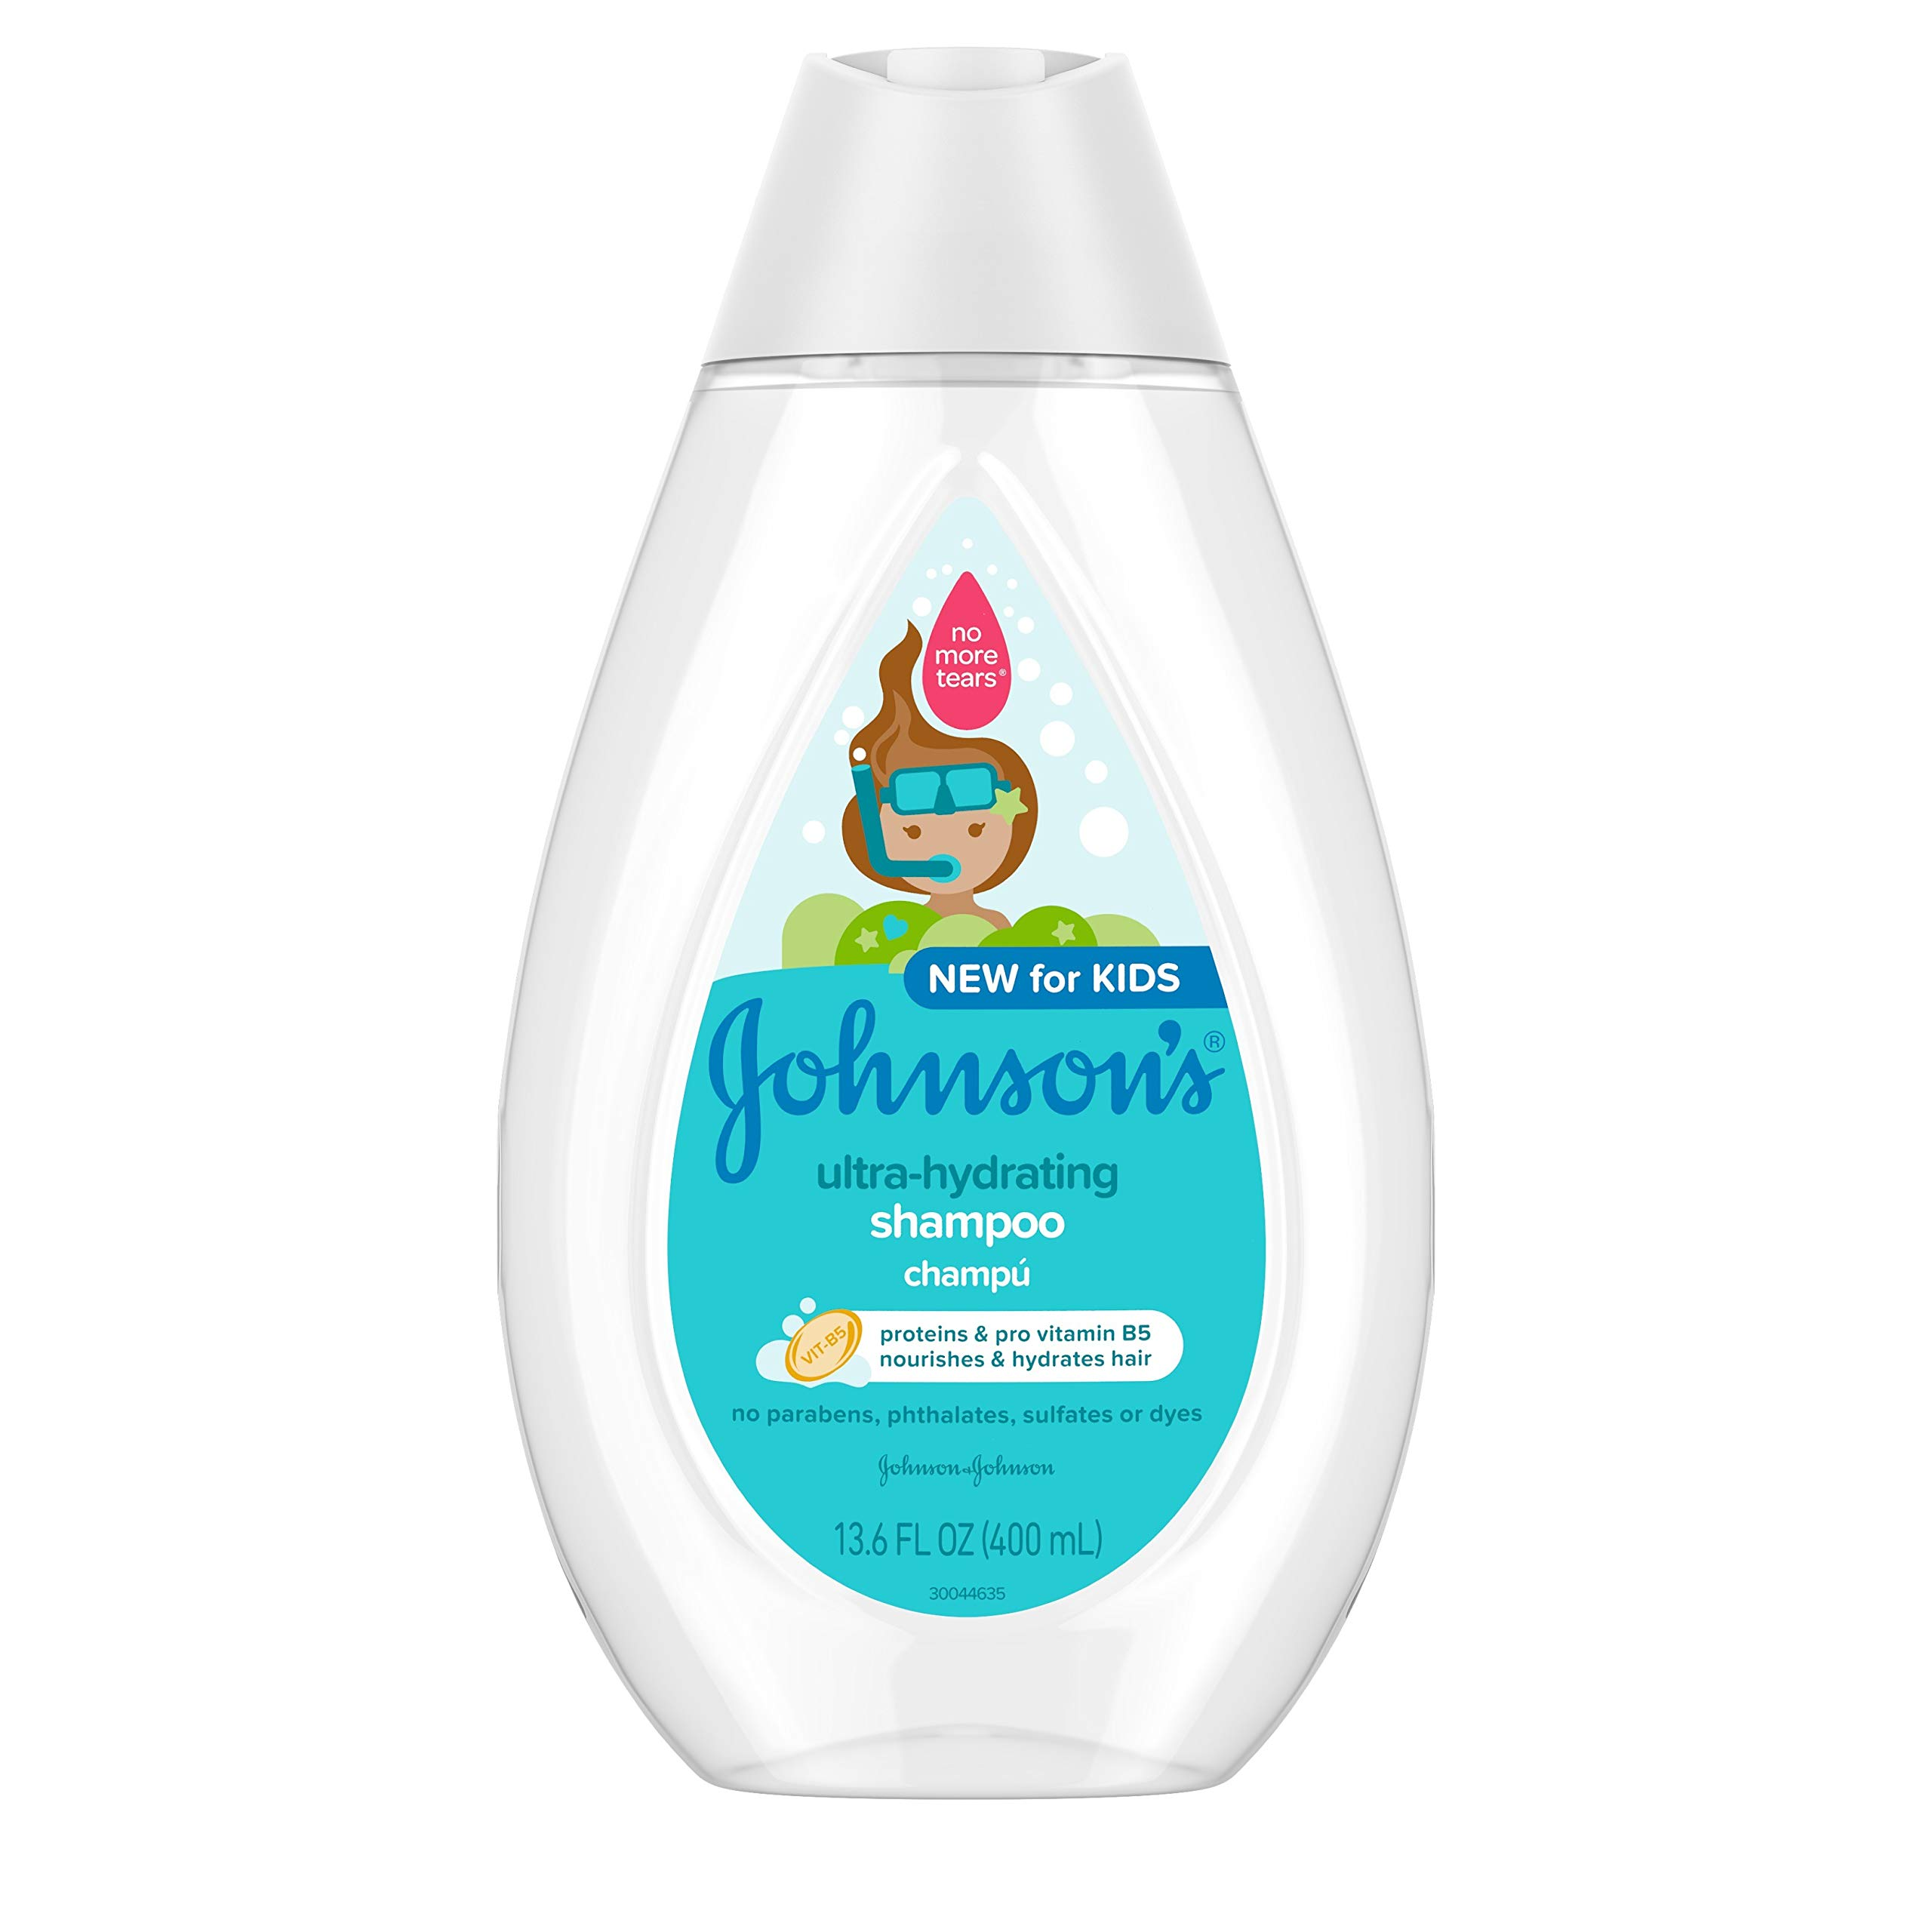 Johnson's Ultra-Hydrating Tear-Free Kids' Shampoo with Pro- Vitamin B5 & Proteins, Paraben-, Sulfate- & Dye-Free Formula…